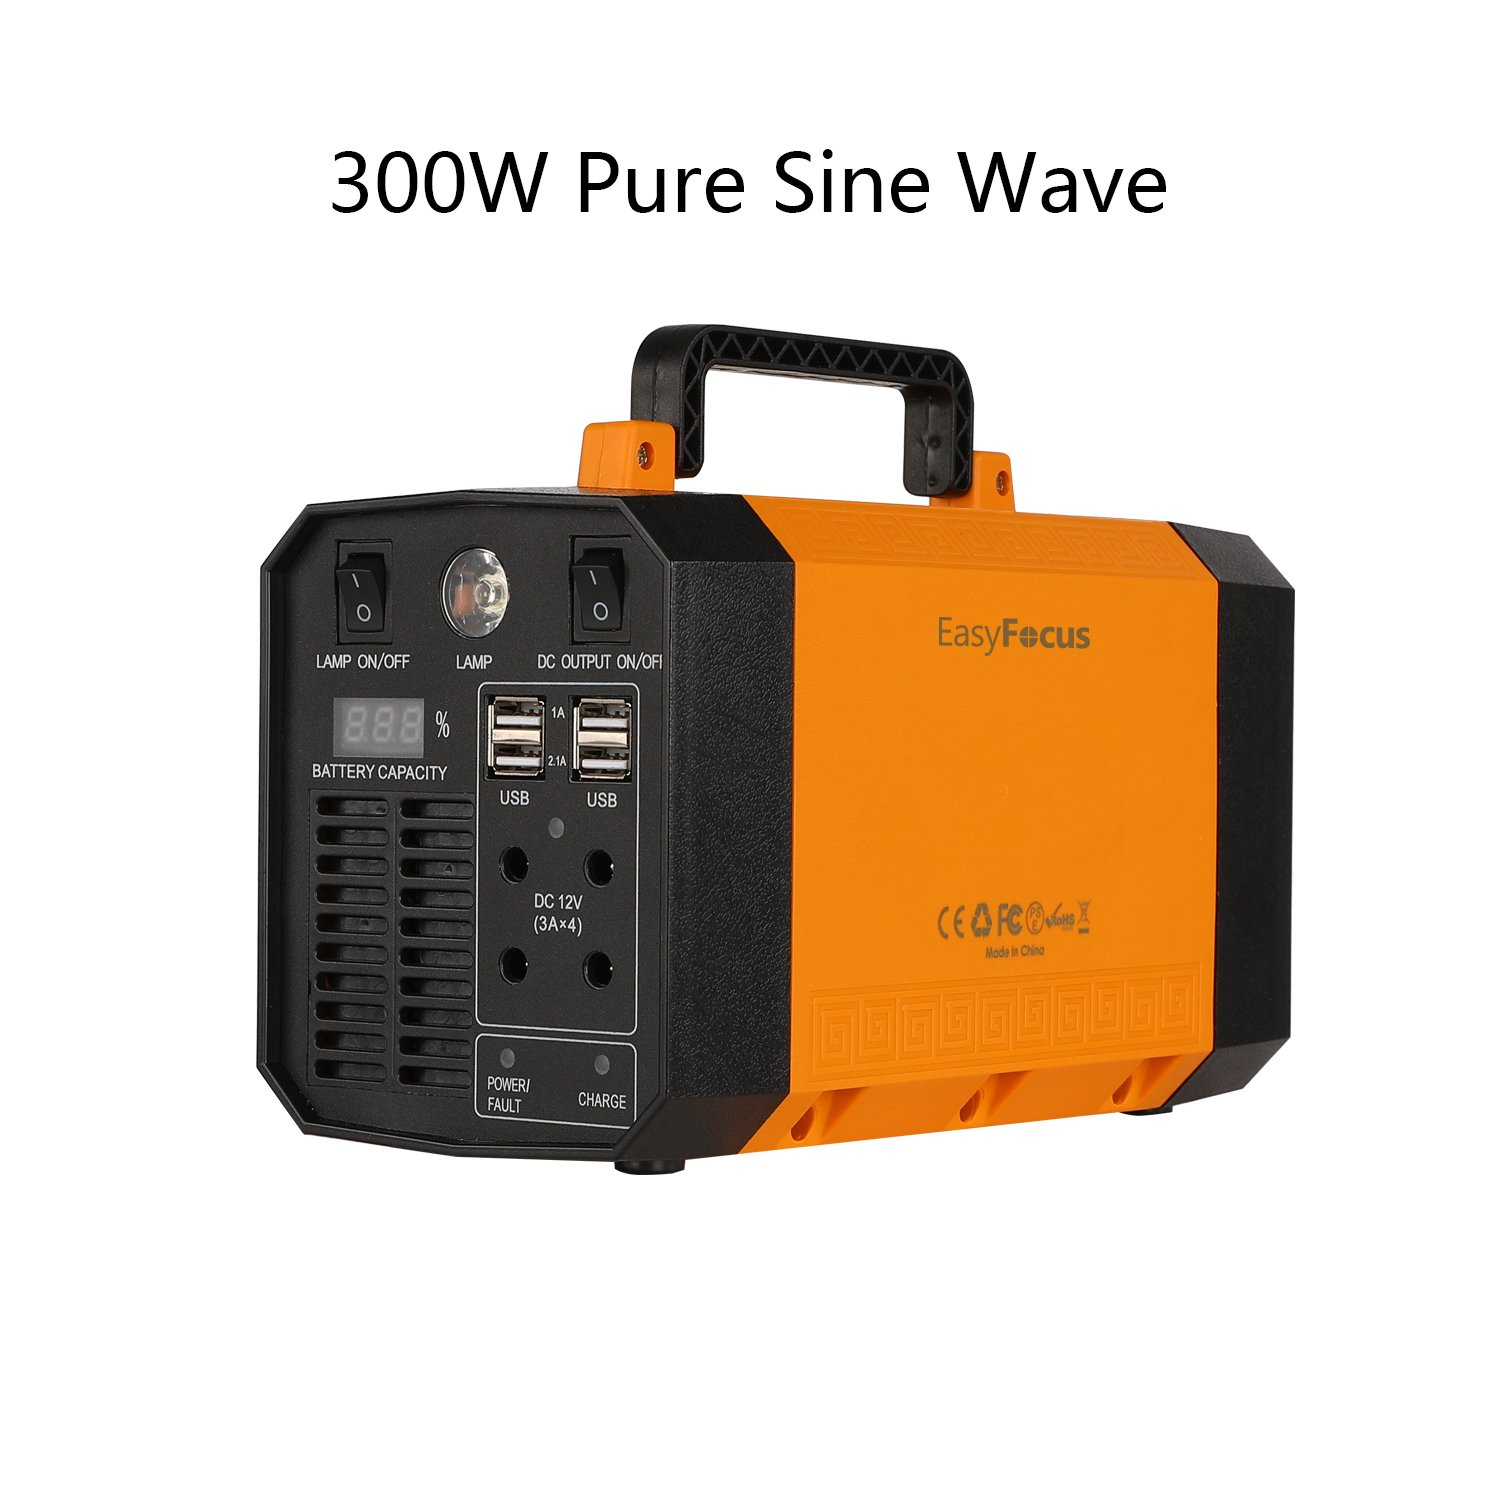 EasyFocus Portable Power Station 200Wh Solar Generator 300W Pure Sine Wave Inverter Emergency Power Supply Charged by Solar/AC Outlet/Cars